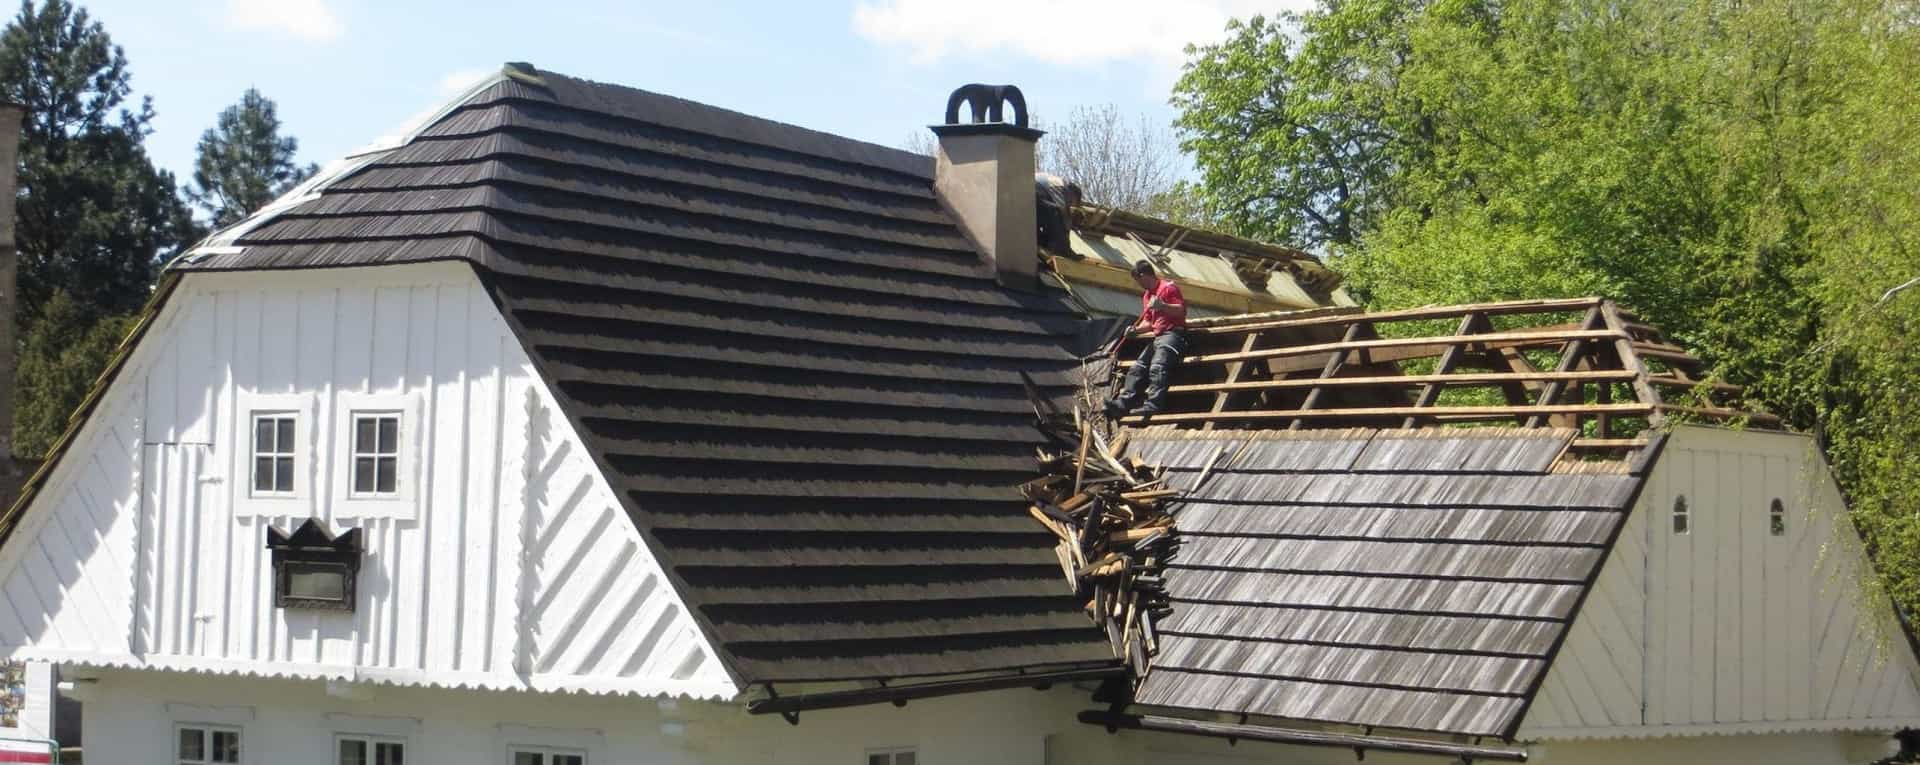 a roof being repaired